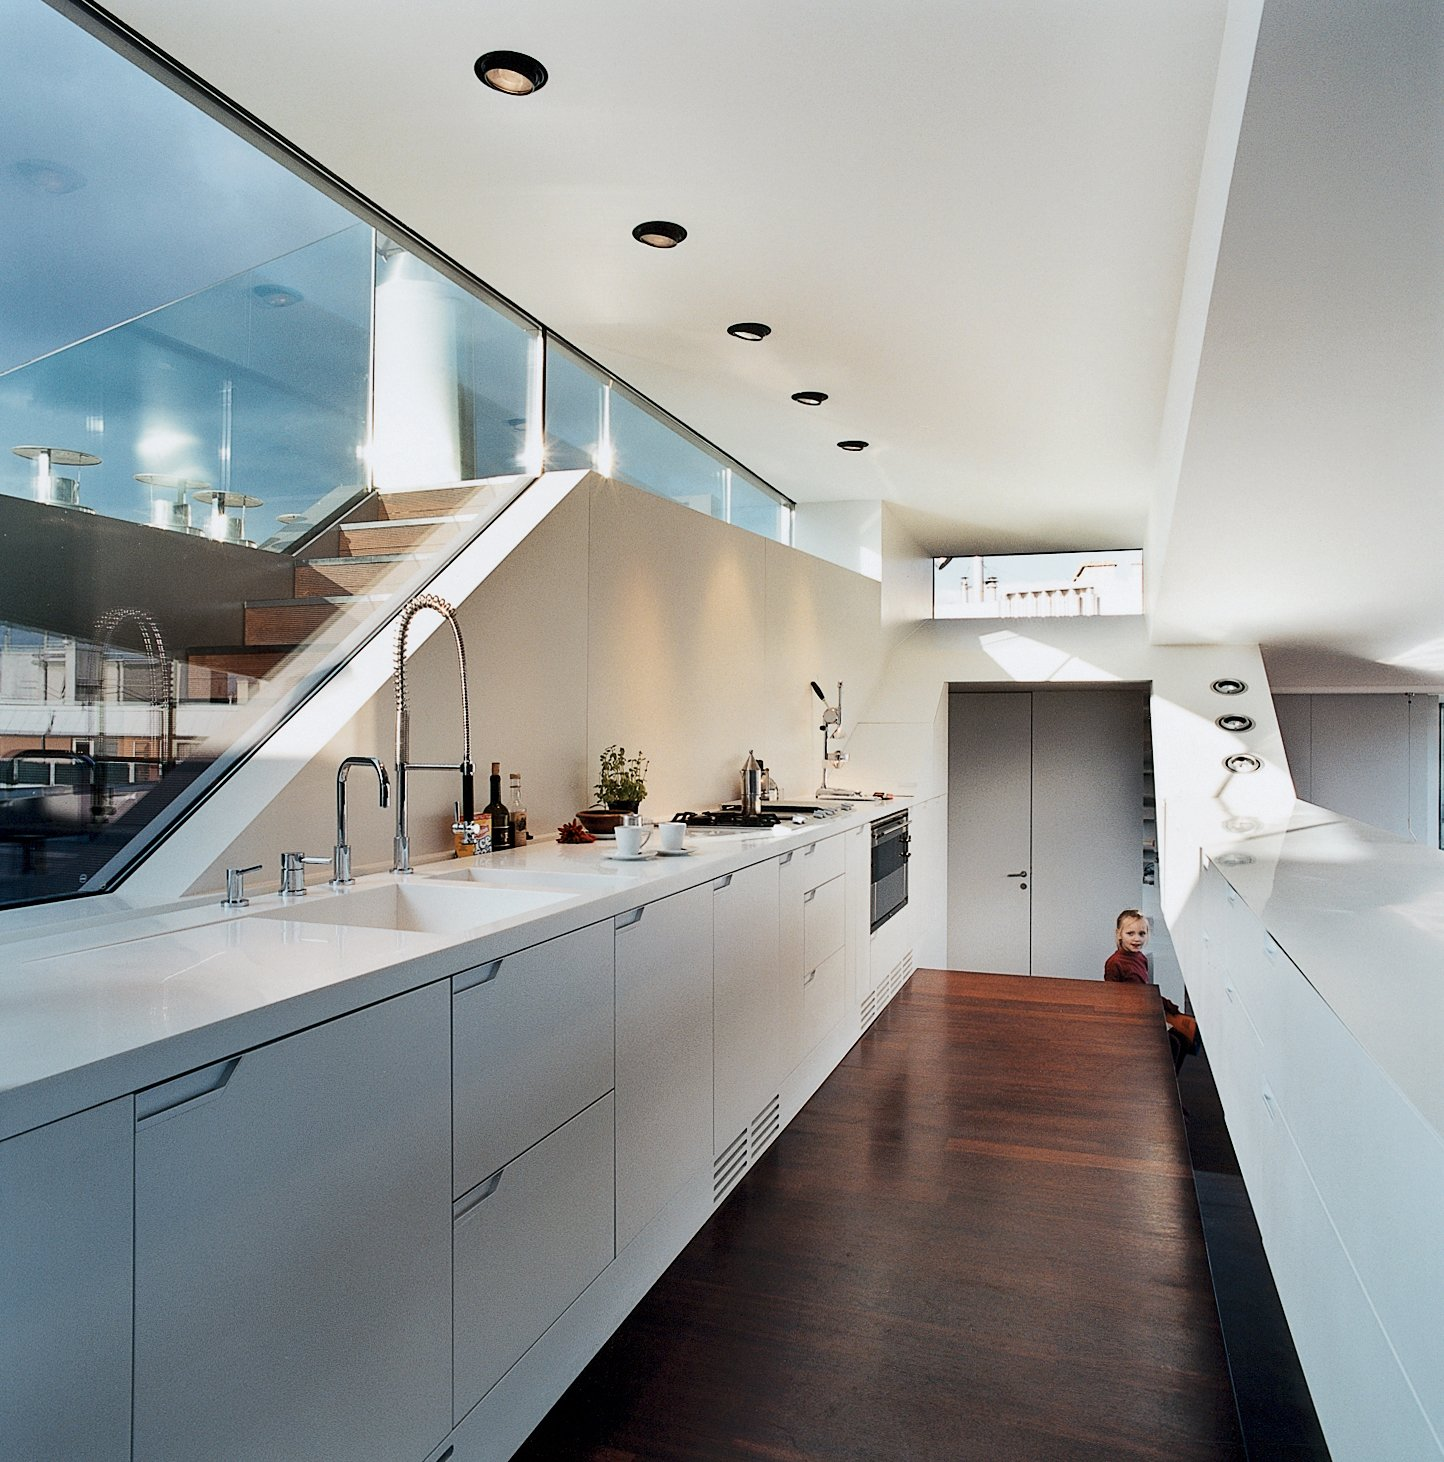 The kitchen window looks out to stairs that lead up to a small roof terrace. The kitchen faucet is byDornbracht. The recessed lighting is by Guzzini.  Photo 9 of 16 in The Penthouse Has Landed